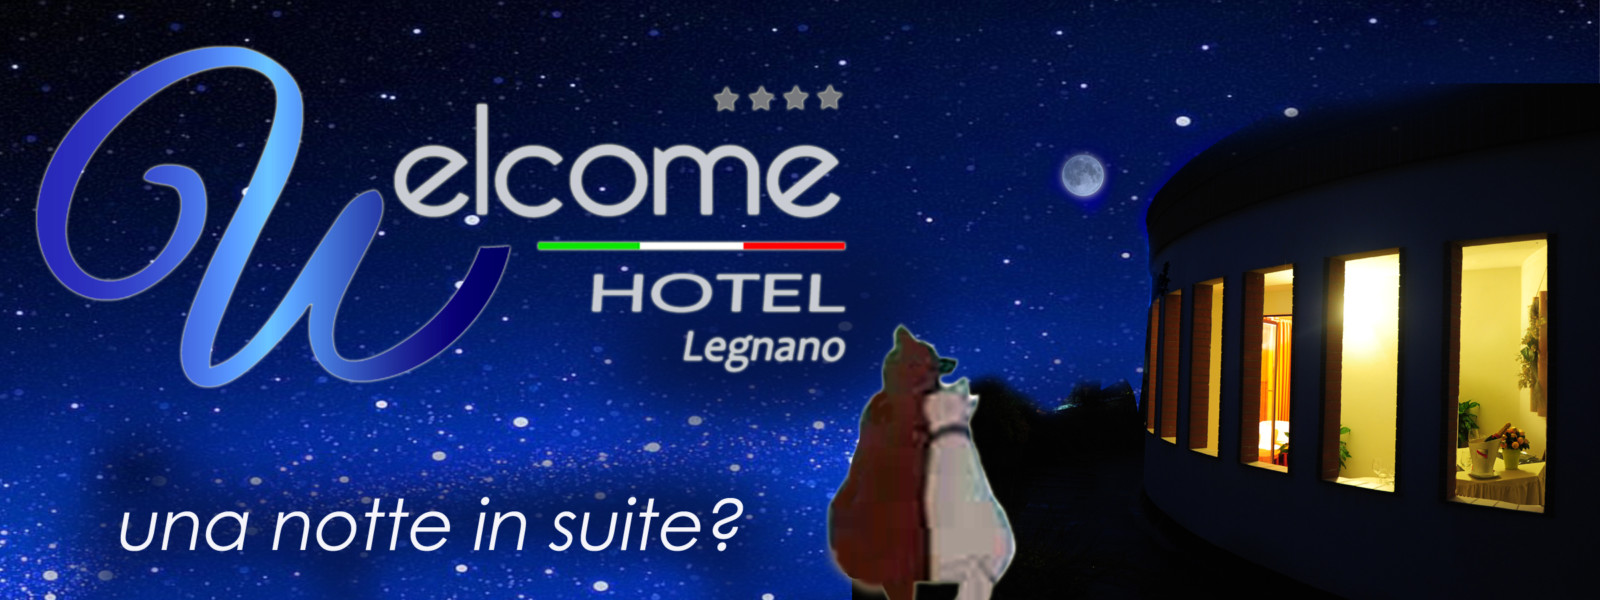 Welcome Hotel_SquareSmall